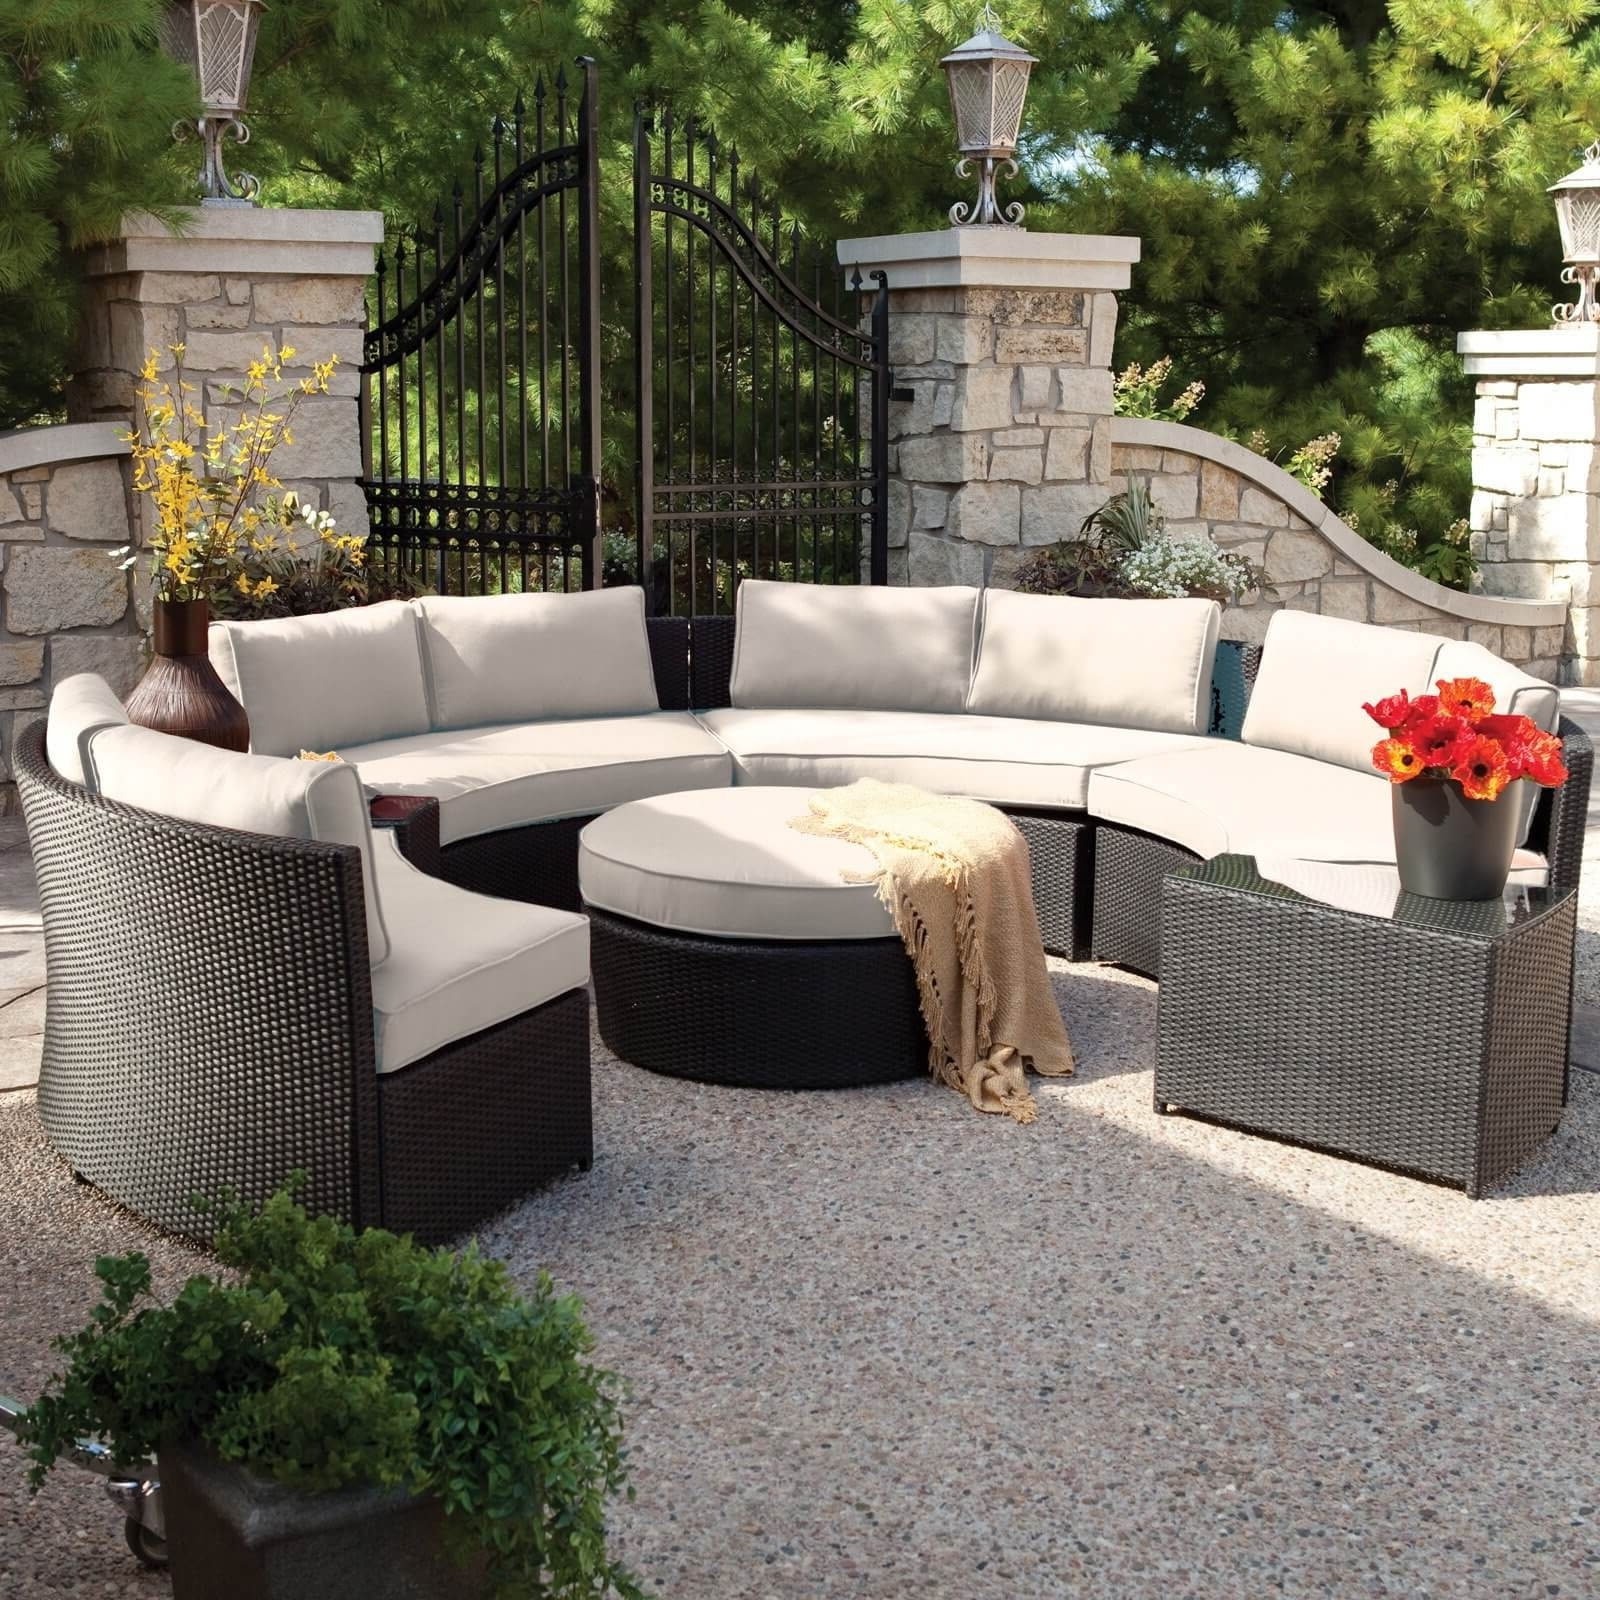 Fashionable Patio Conversation Sets With Ottomans With Regard To 25 Awesome Modern Brown All Weather Outdoor Patio Sectionals (View 4 of 15)